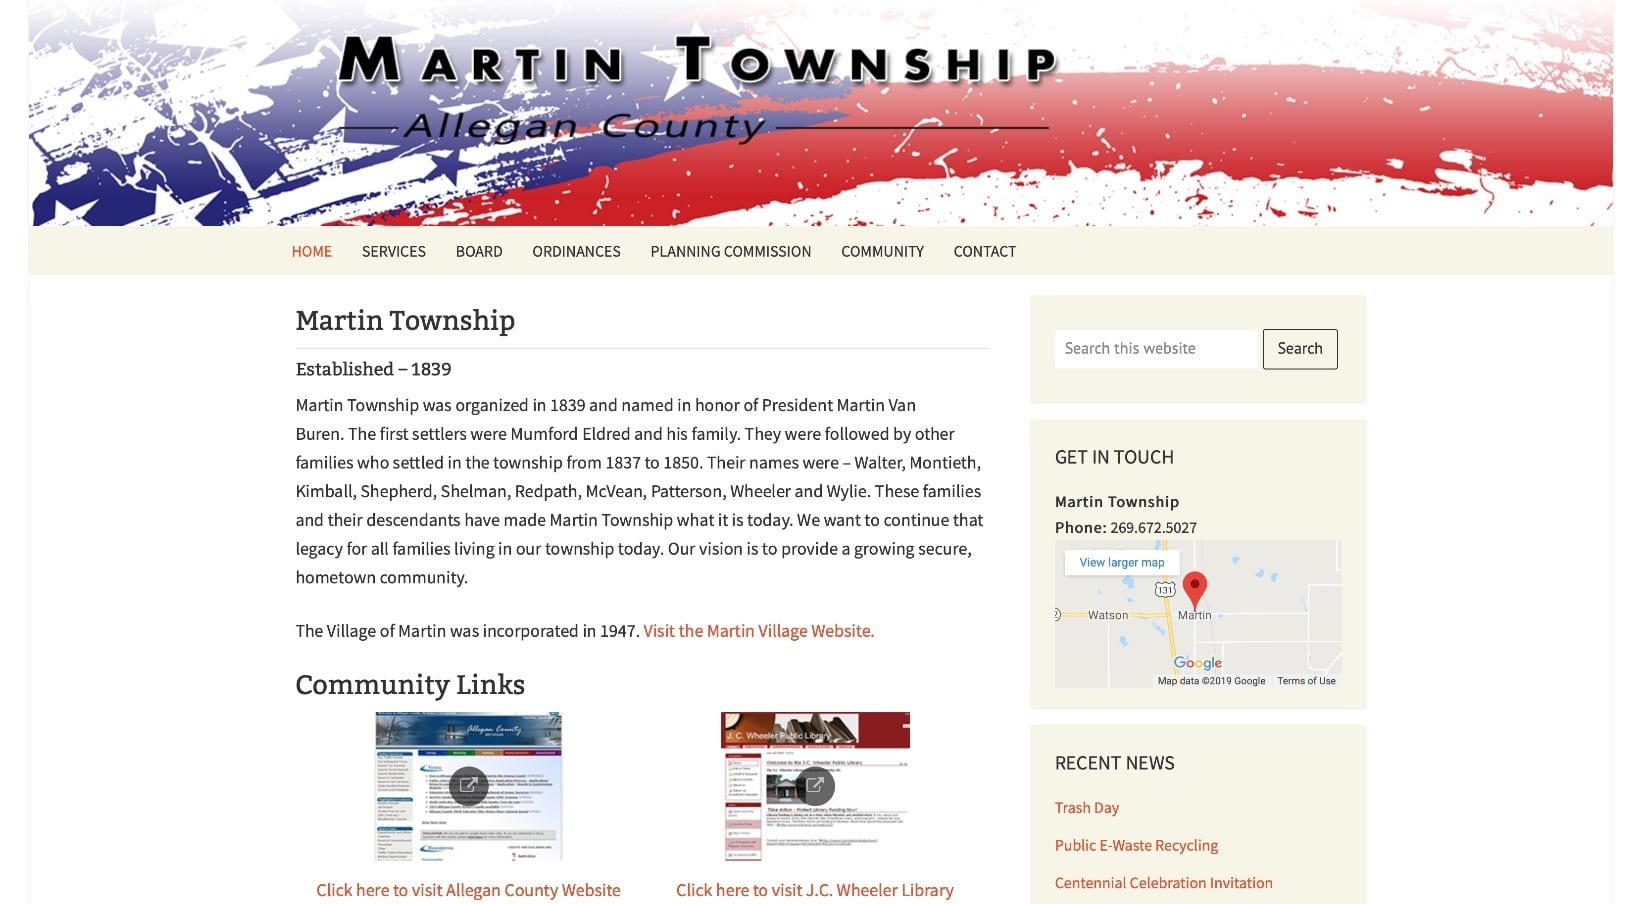 Martin Township in Allegan County